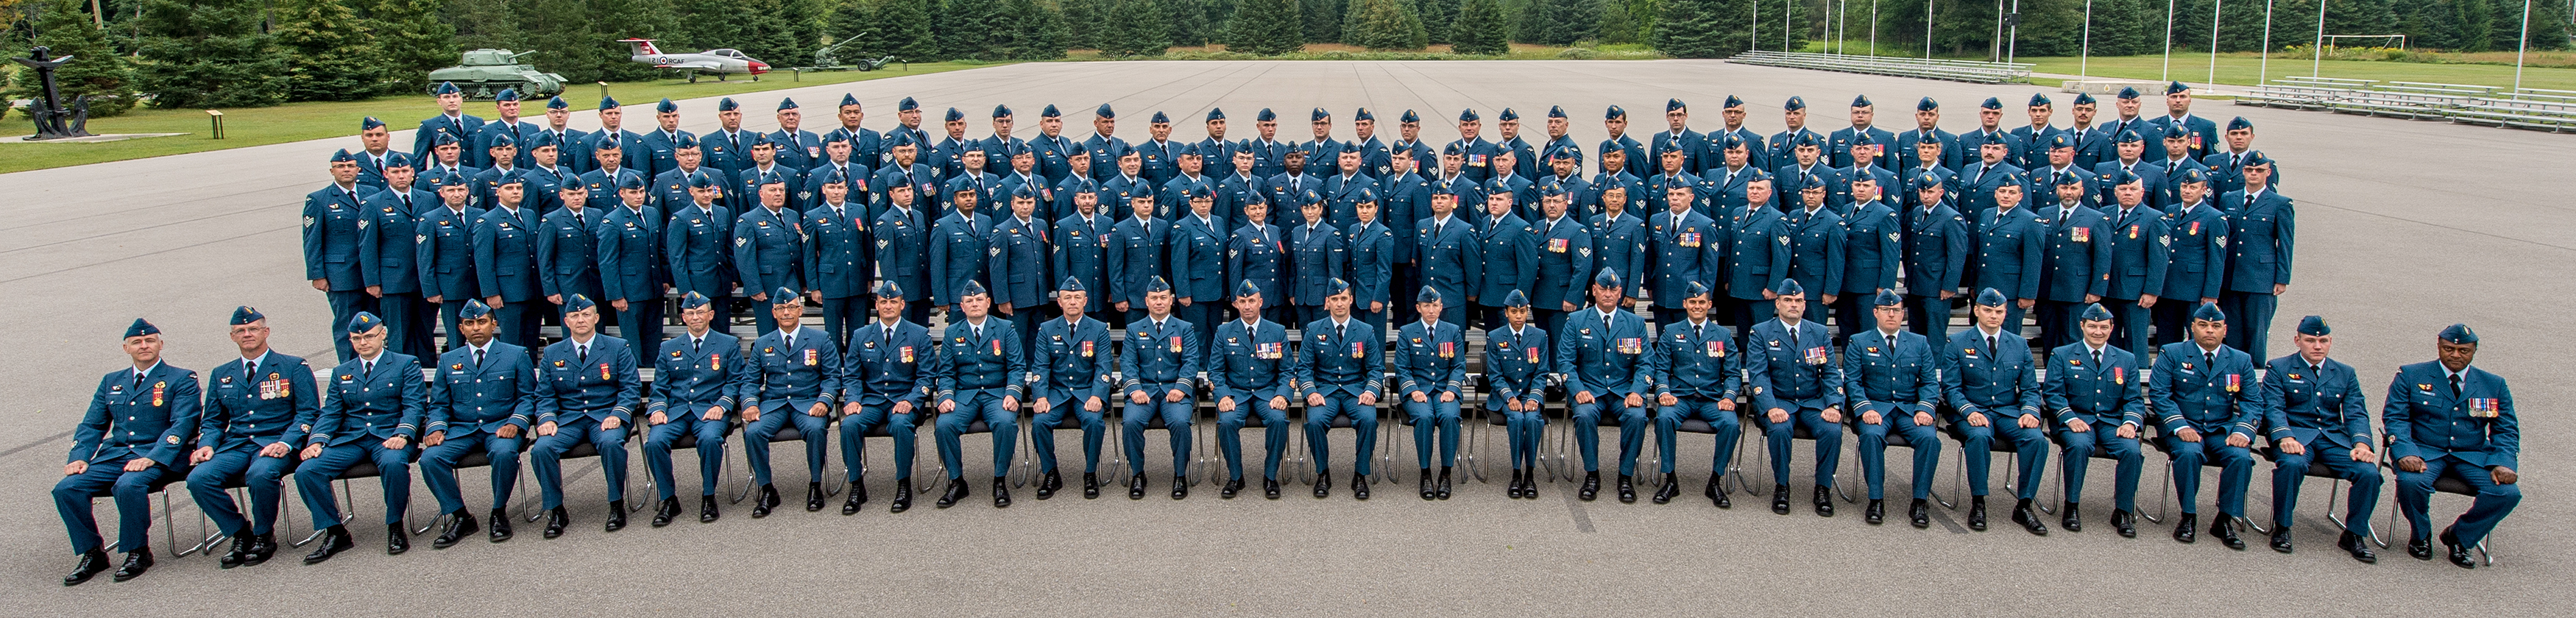 "The ""Consecration Team"" – the more than 100 airmen and airwomen who will participate in the RCAF Colours presentation ceremony and parade that will be held at Nathan Phillips Square in Toronto on September 1, 2017 – pause during rehearsals for a group photo. PHOTO: Ordinary Seaman Larissa Halldorson"